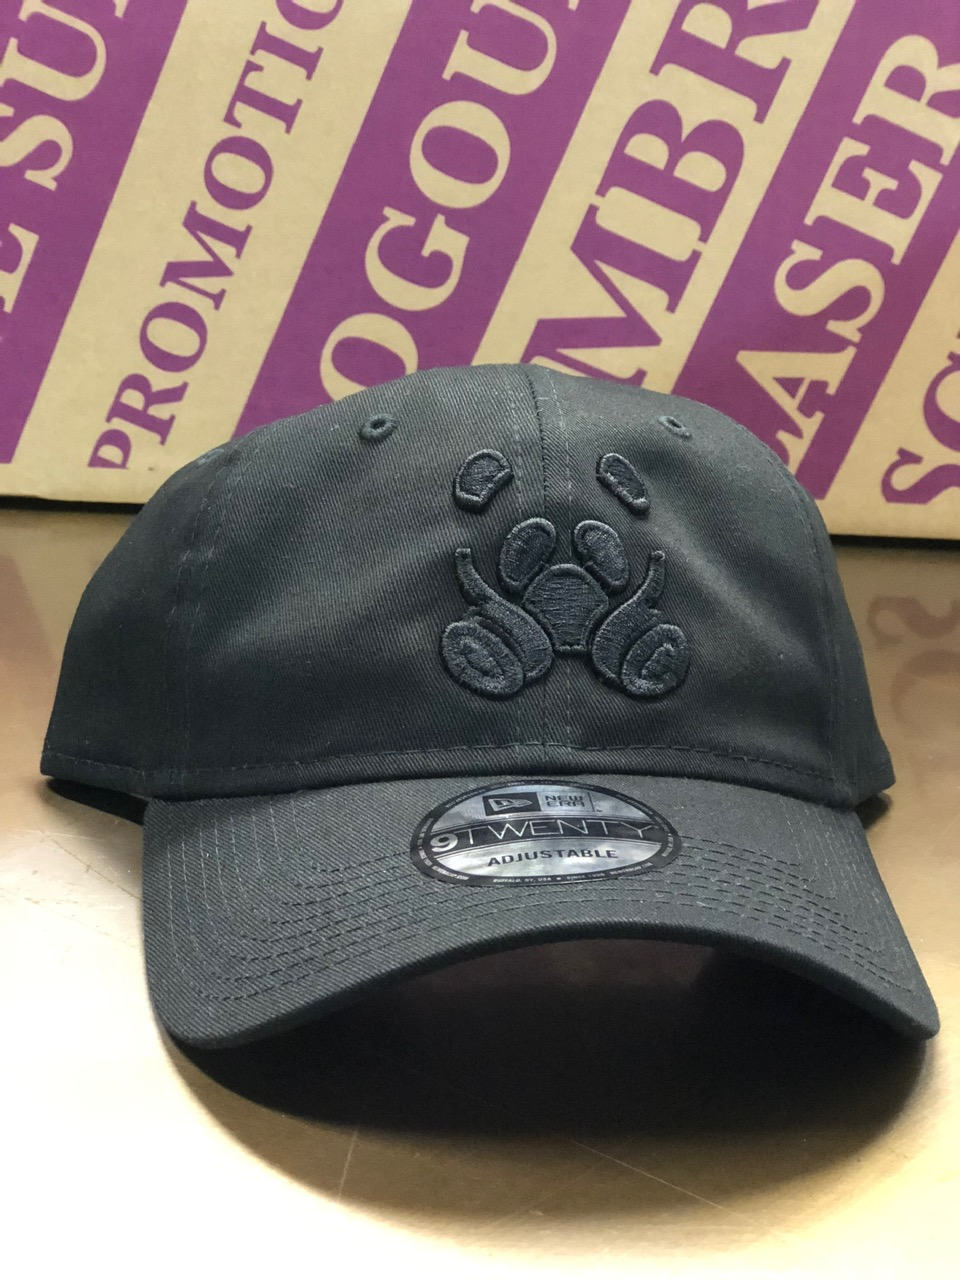 logounltd_laser_etching_embroidery_screen_printing_apparel_uniform_custom_tshirts_kirkland_bellevue_seattle_redmond_woodinville_branded_merchandise_promotional_products_logo_unltd_3D_puff_ink_hats (4).JPG